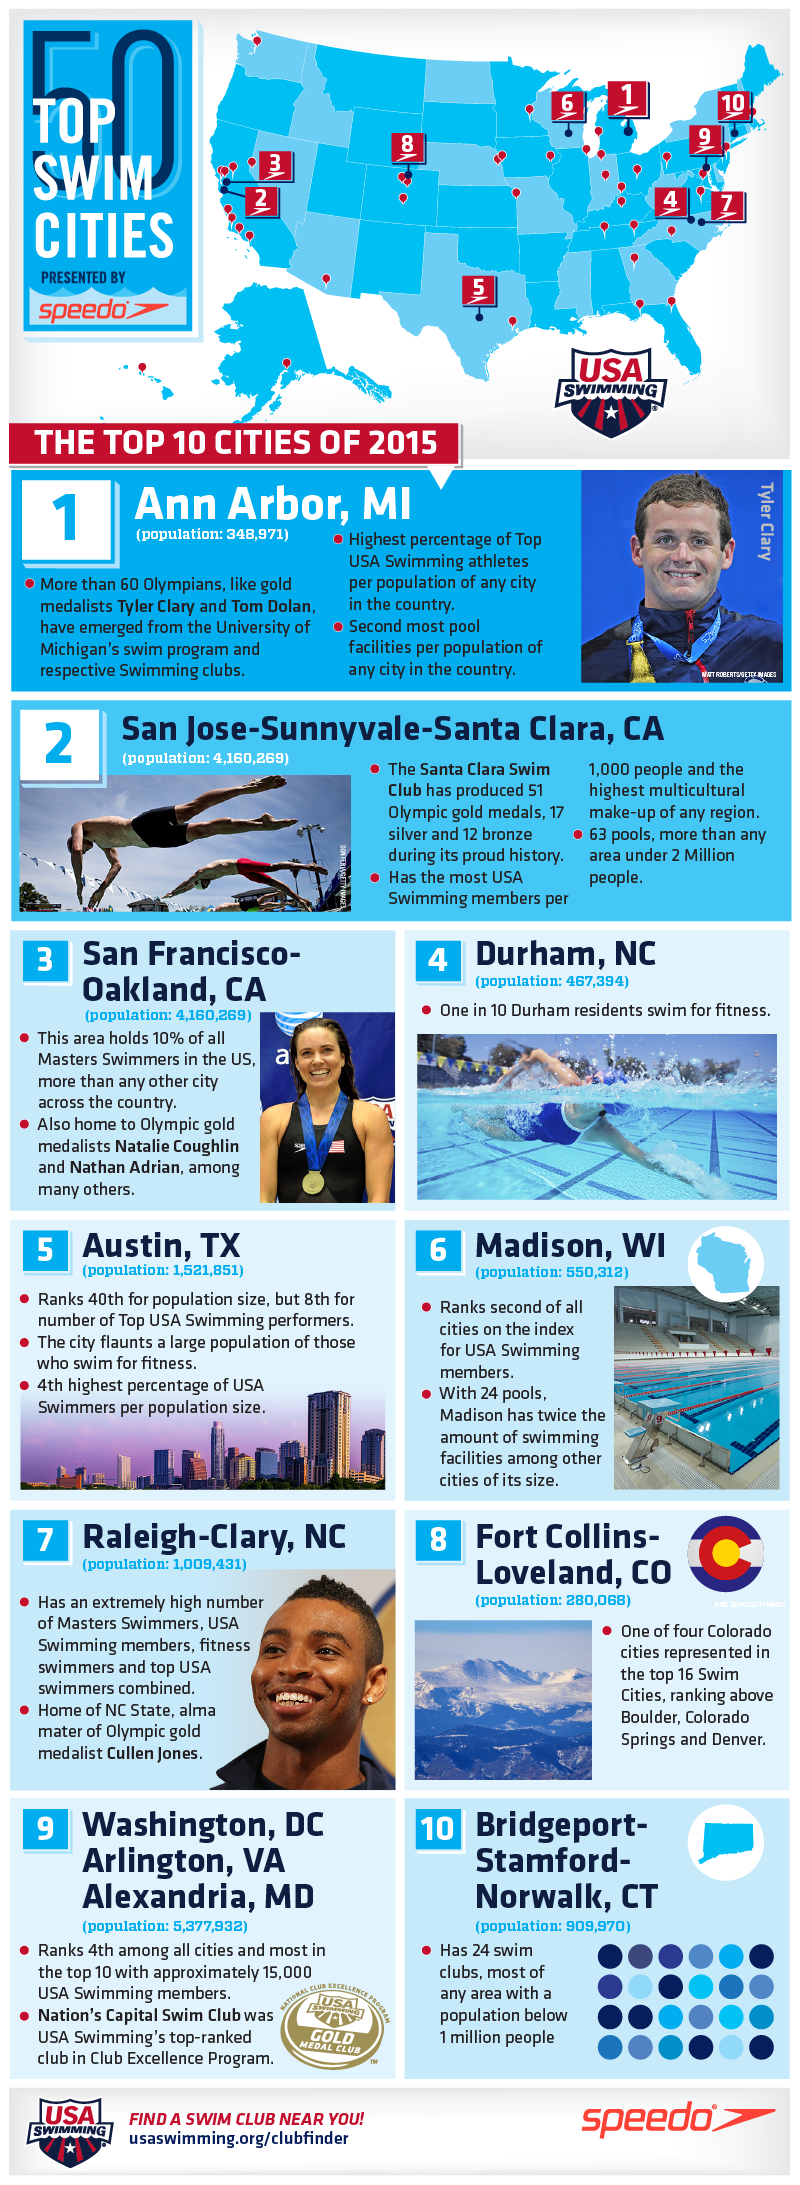 Ann Arbor Named 'America's Top Swim City' for Second Straight Year  in Nationwide Study by USA Swimming and Speedo USA